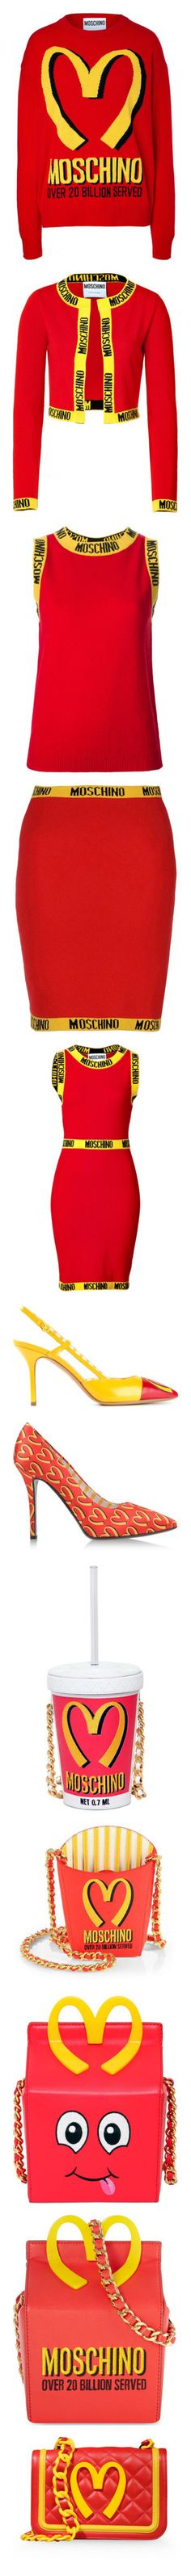 """""""Moschino"""" by livnd ❤ liked on Polyvore featuring fun, Moschino, collection, fallwinter2014, tops, sweaters, moschino, long sleeves, red and sweater pullover"""